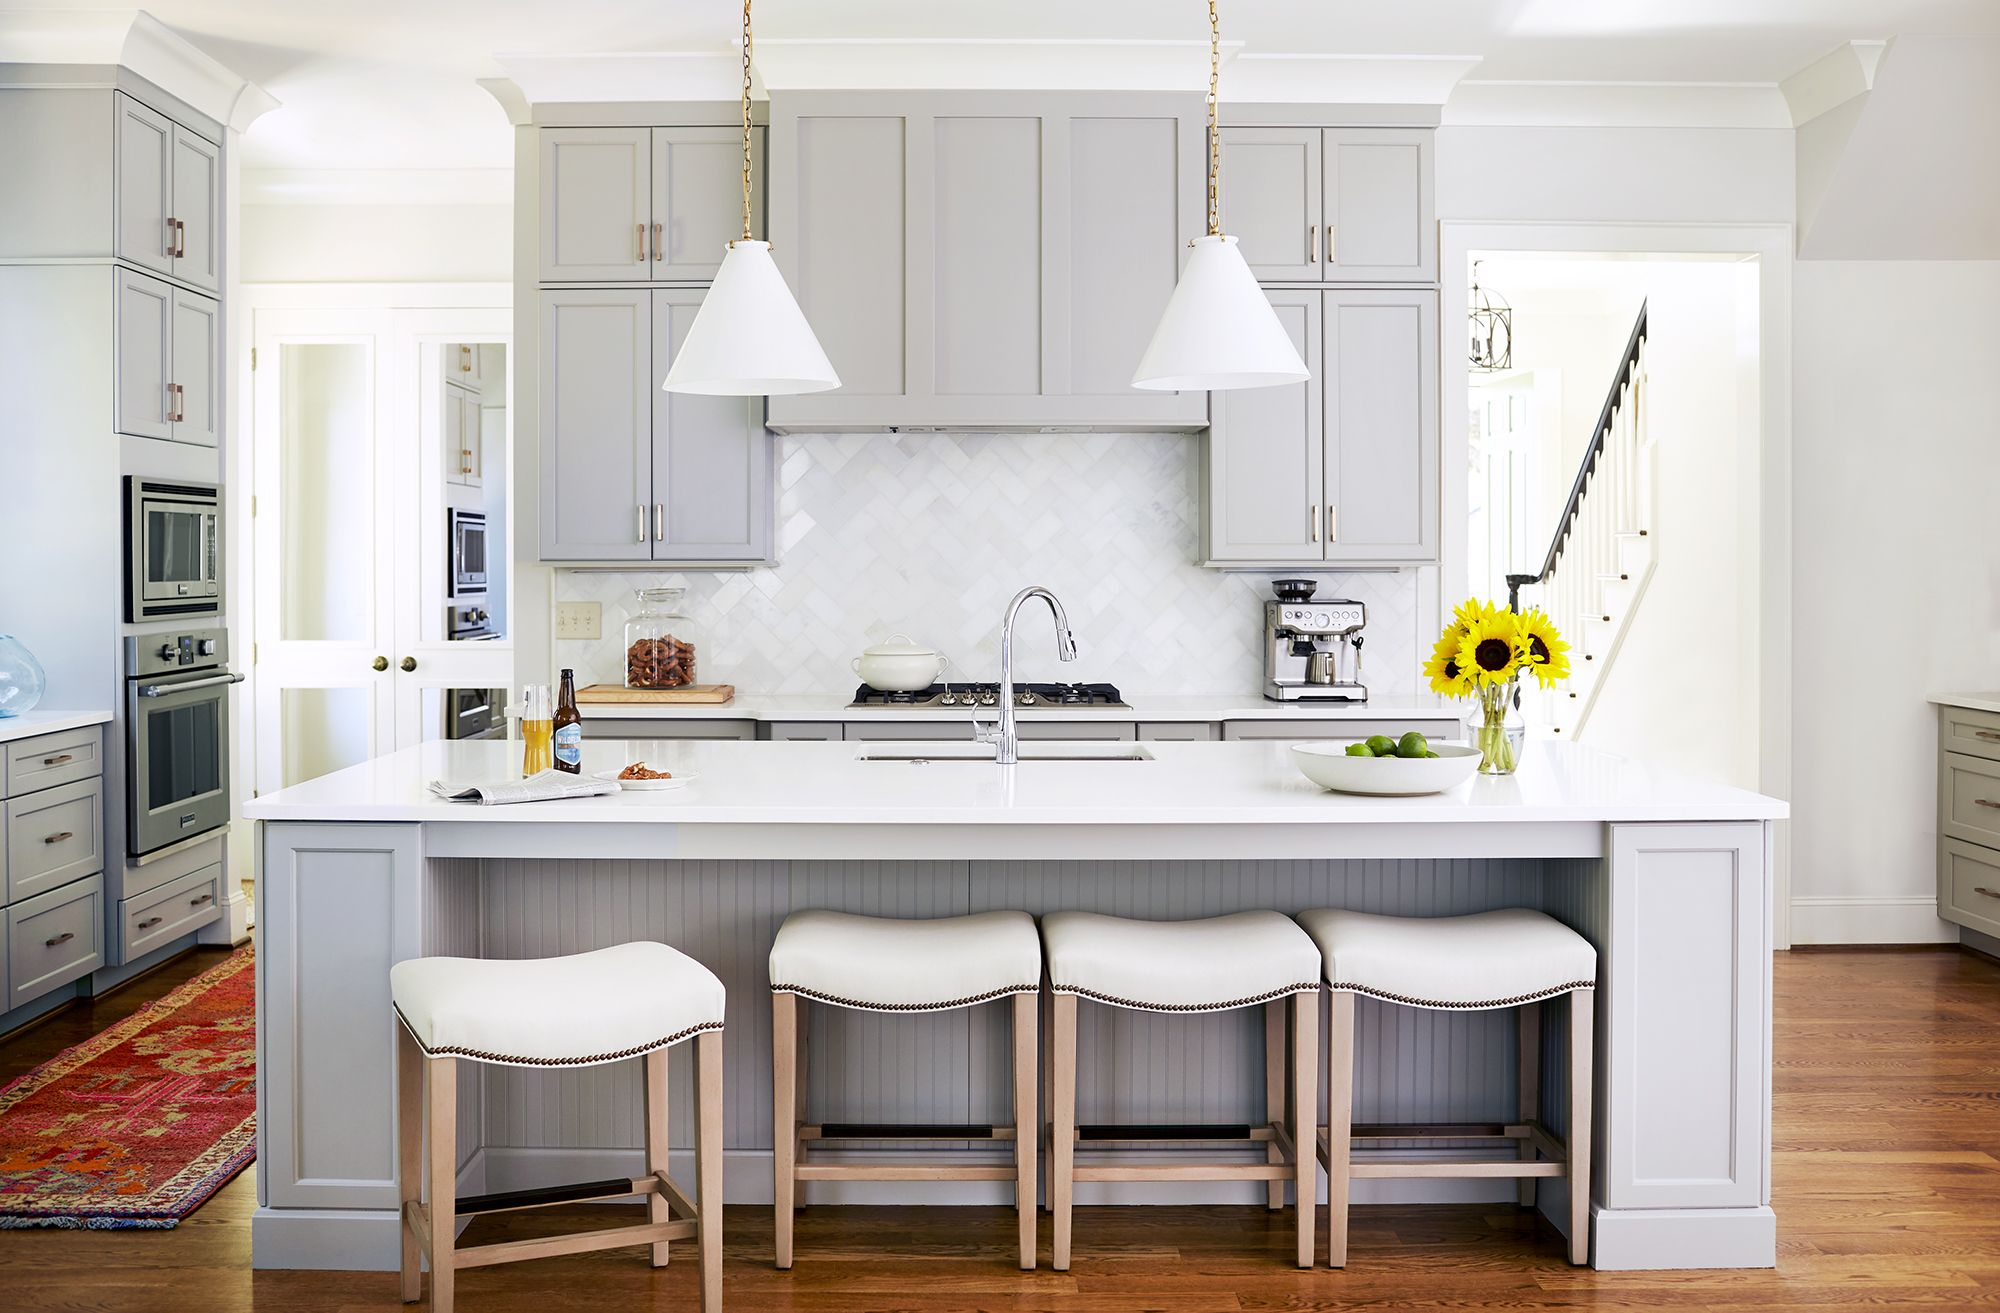 kitchen range hoods glass countertops 28 stylish ideas for ovens kitchens with concealed